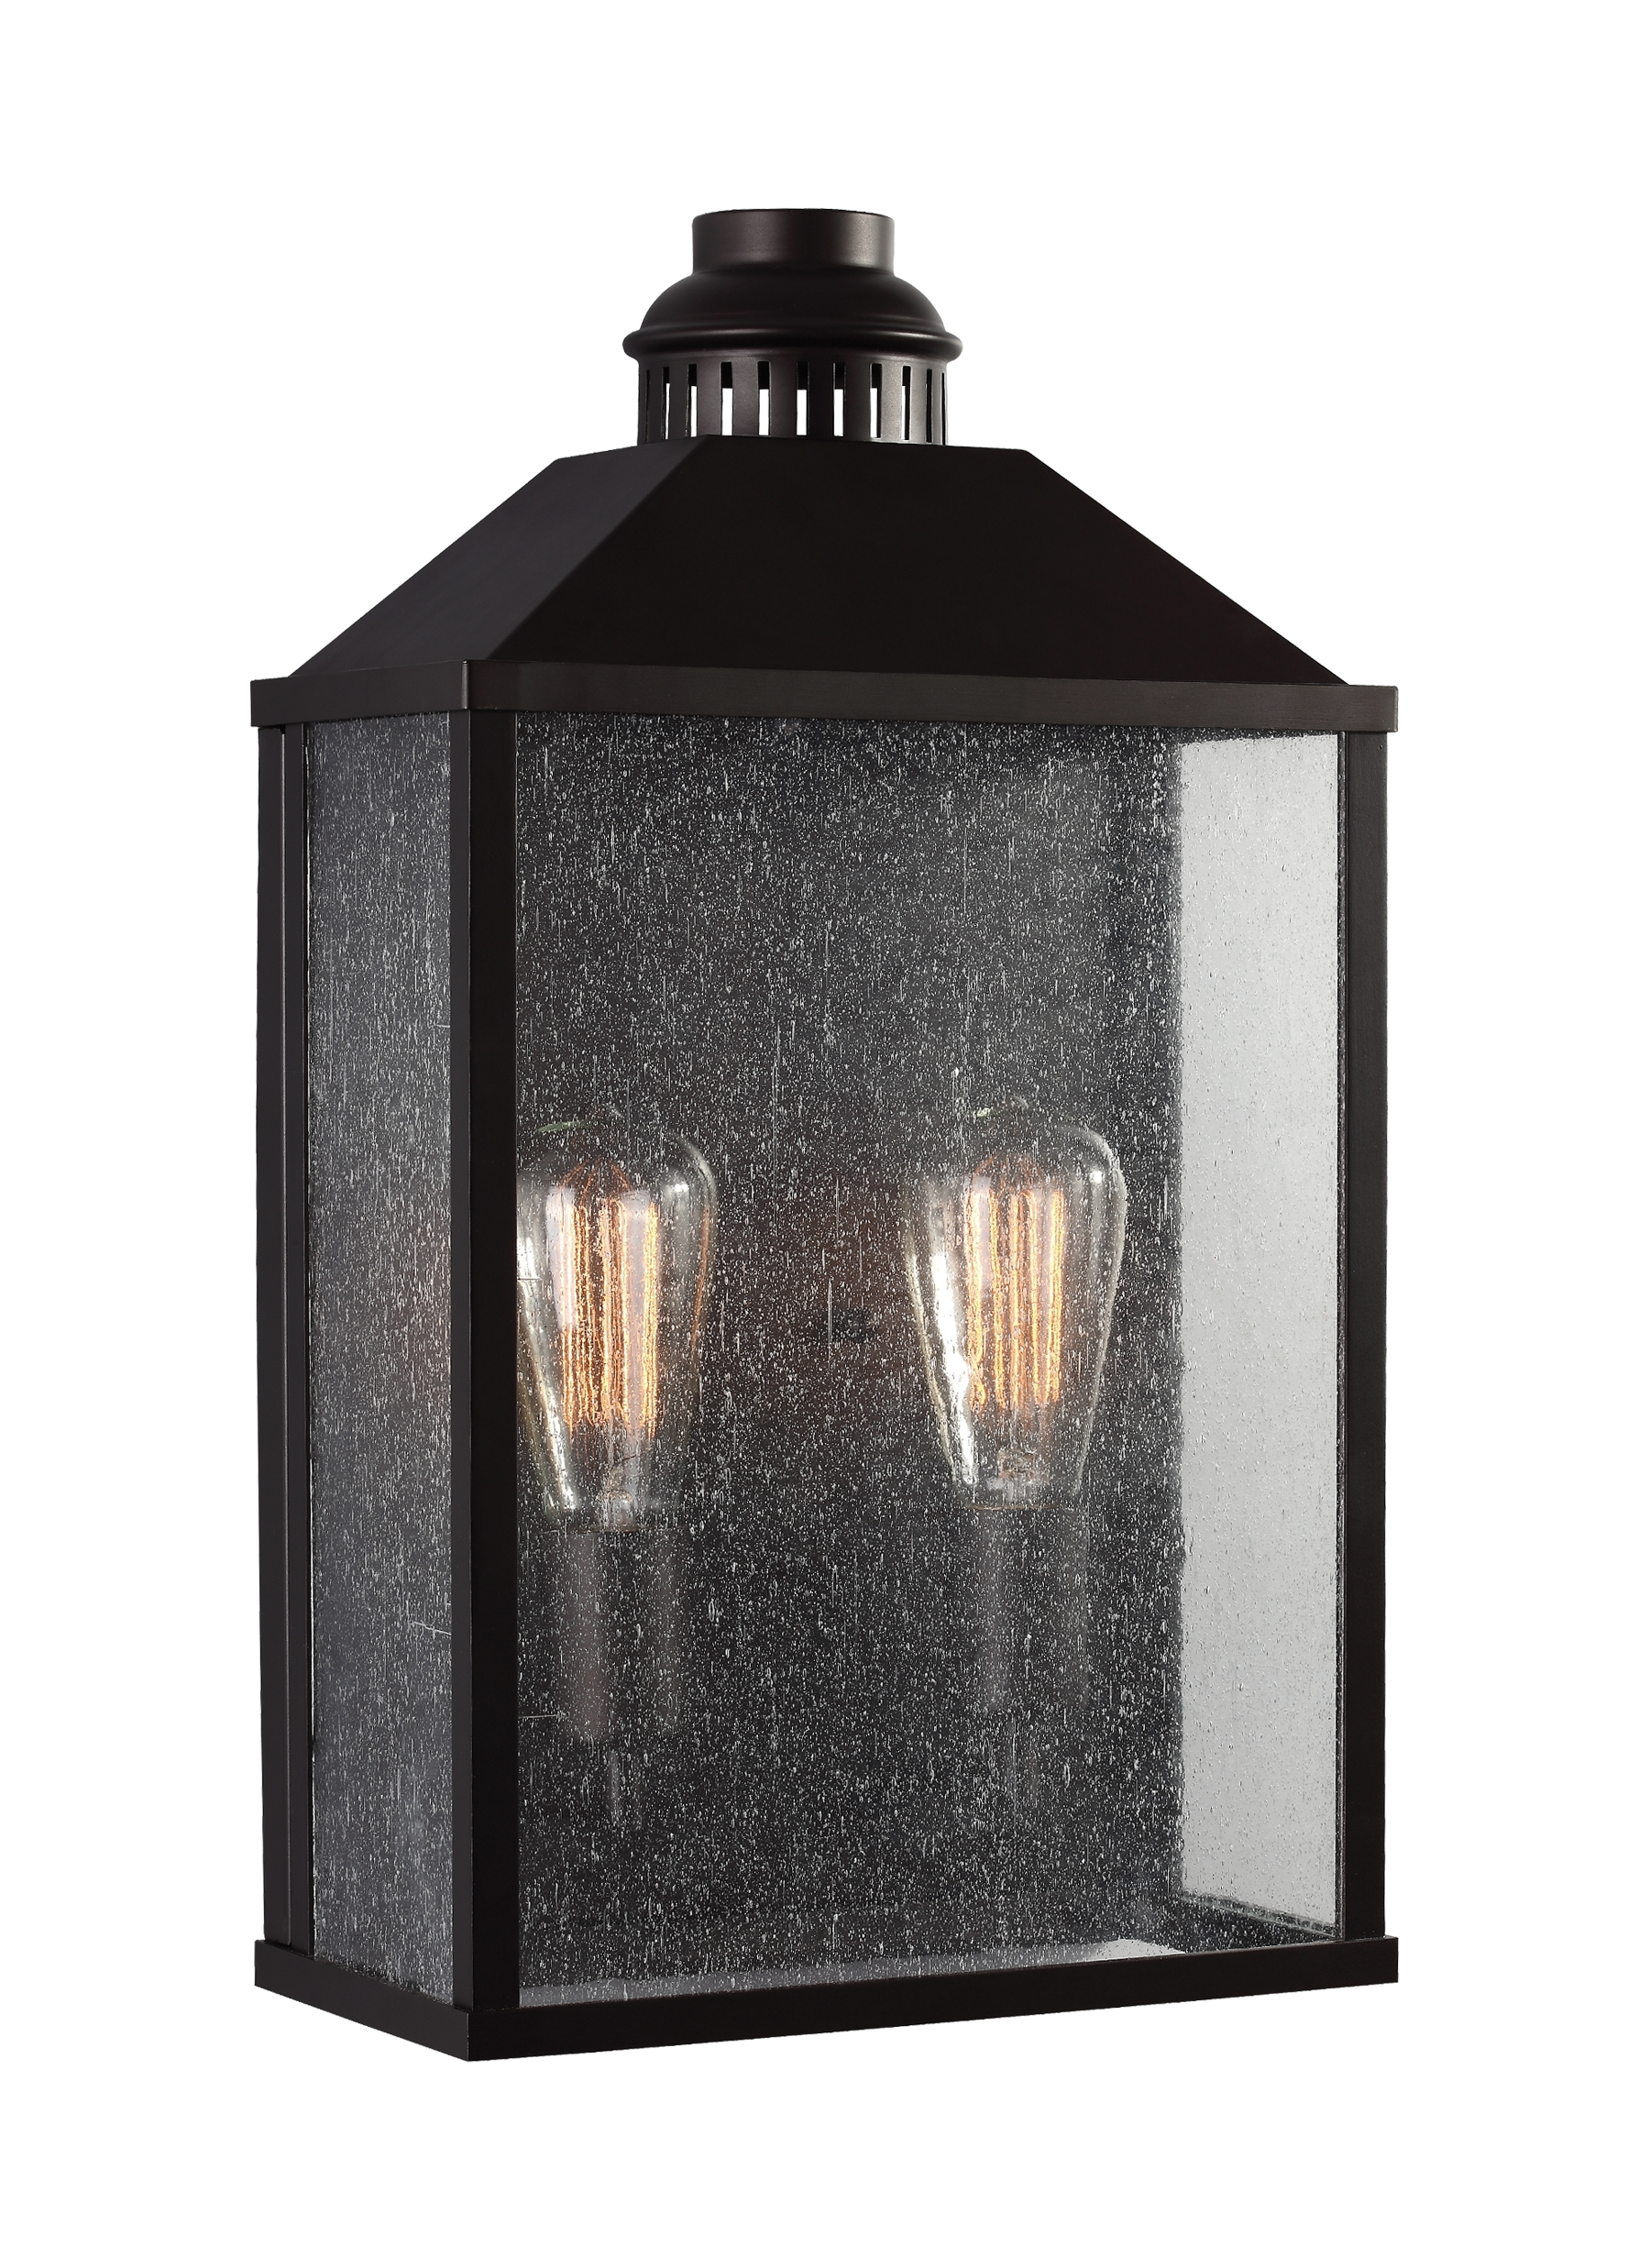 Ol18011Orb,2 – Light Outdoor Wall Sconce,oil Rubbed Bronze Intended For Outdoor Oil Lanterns For Patio (View 8 of 20)